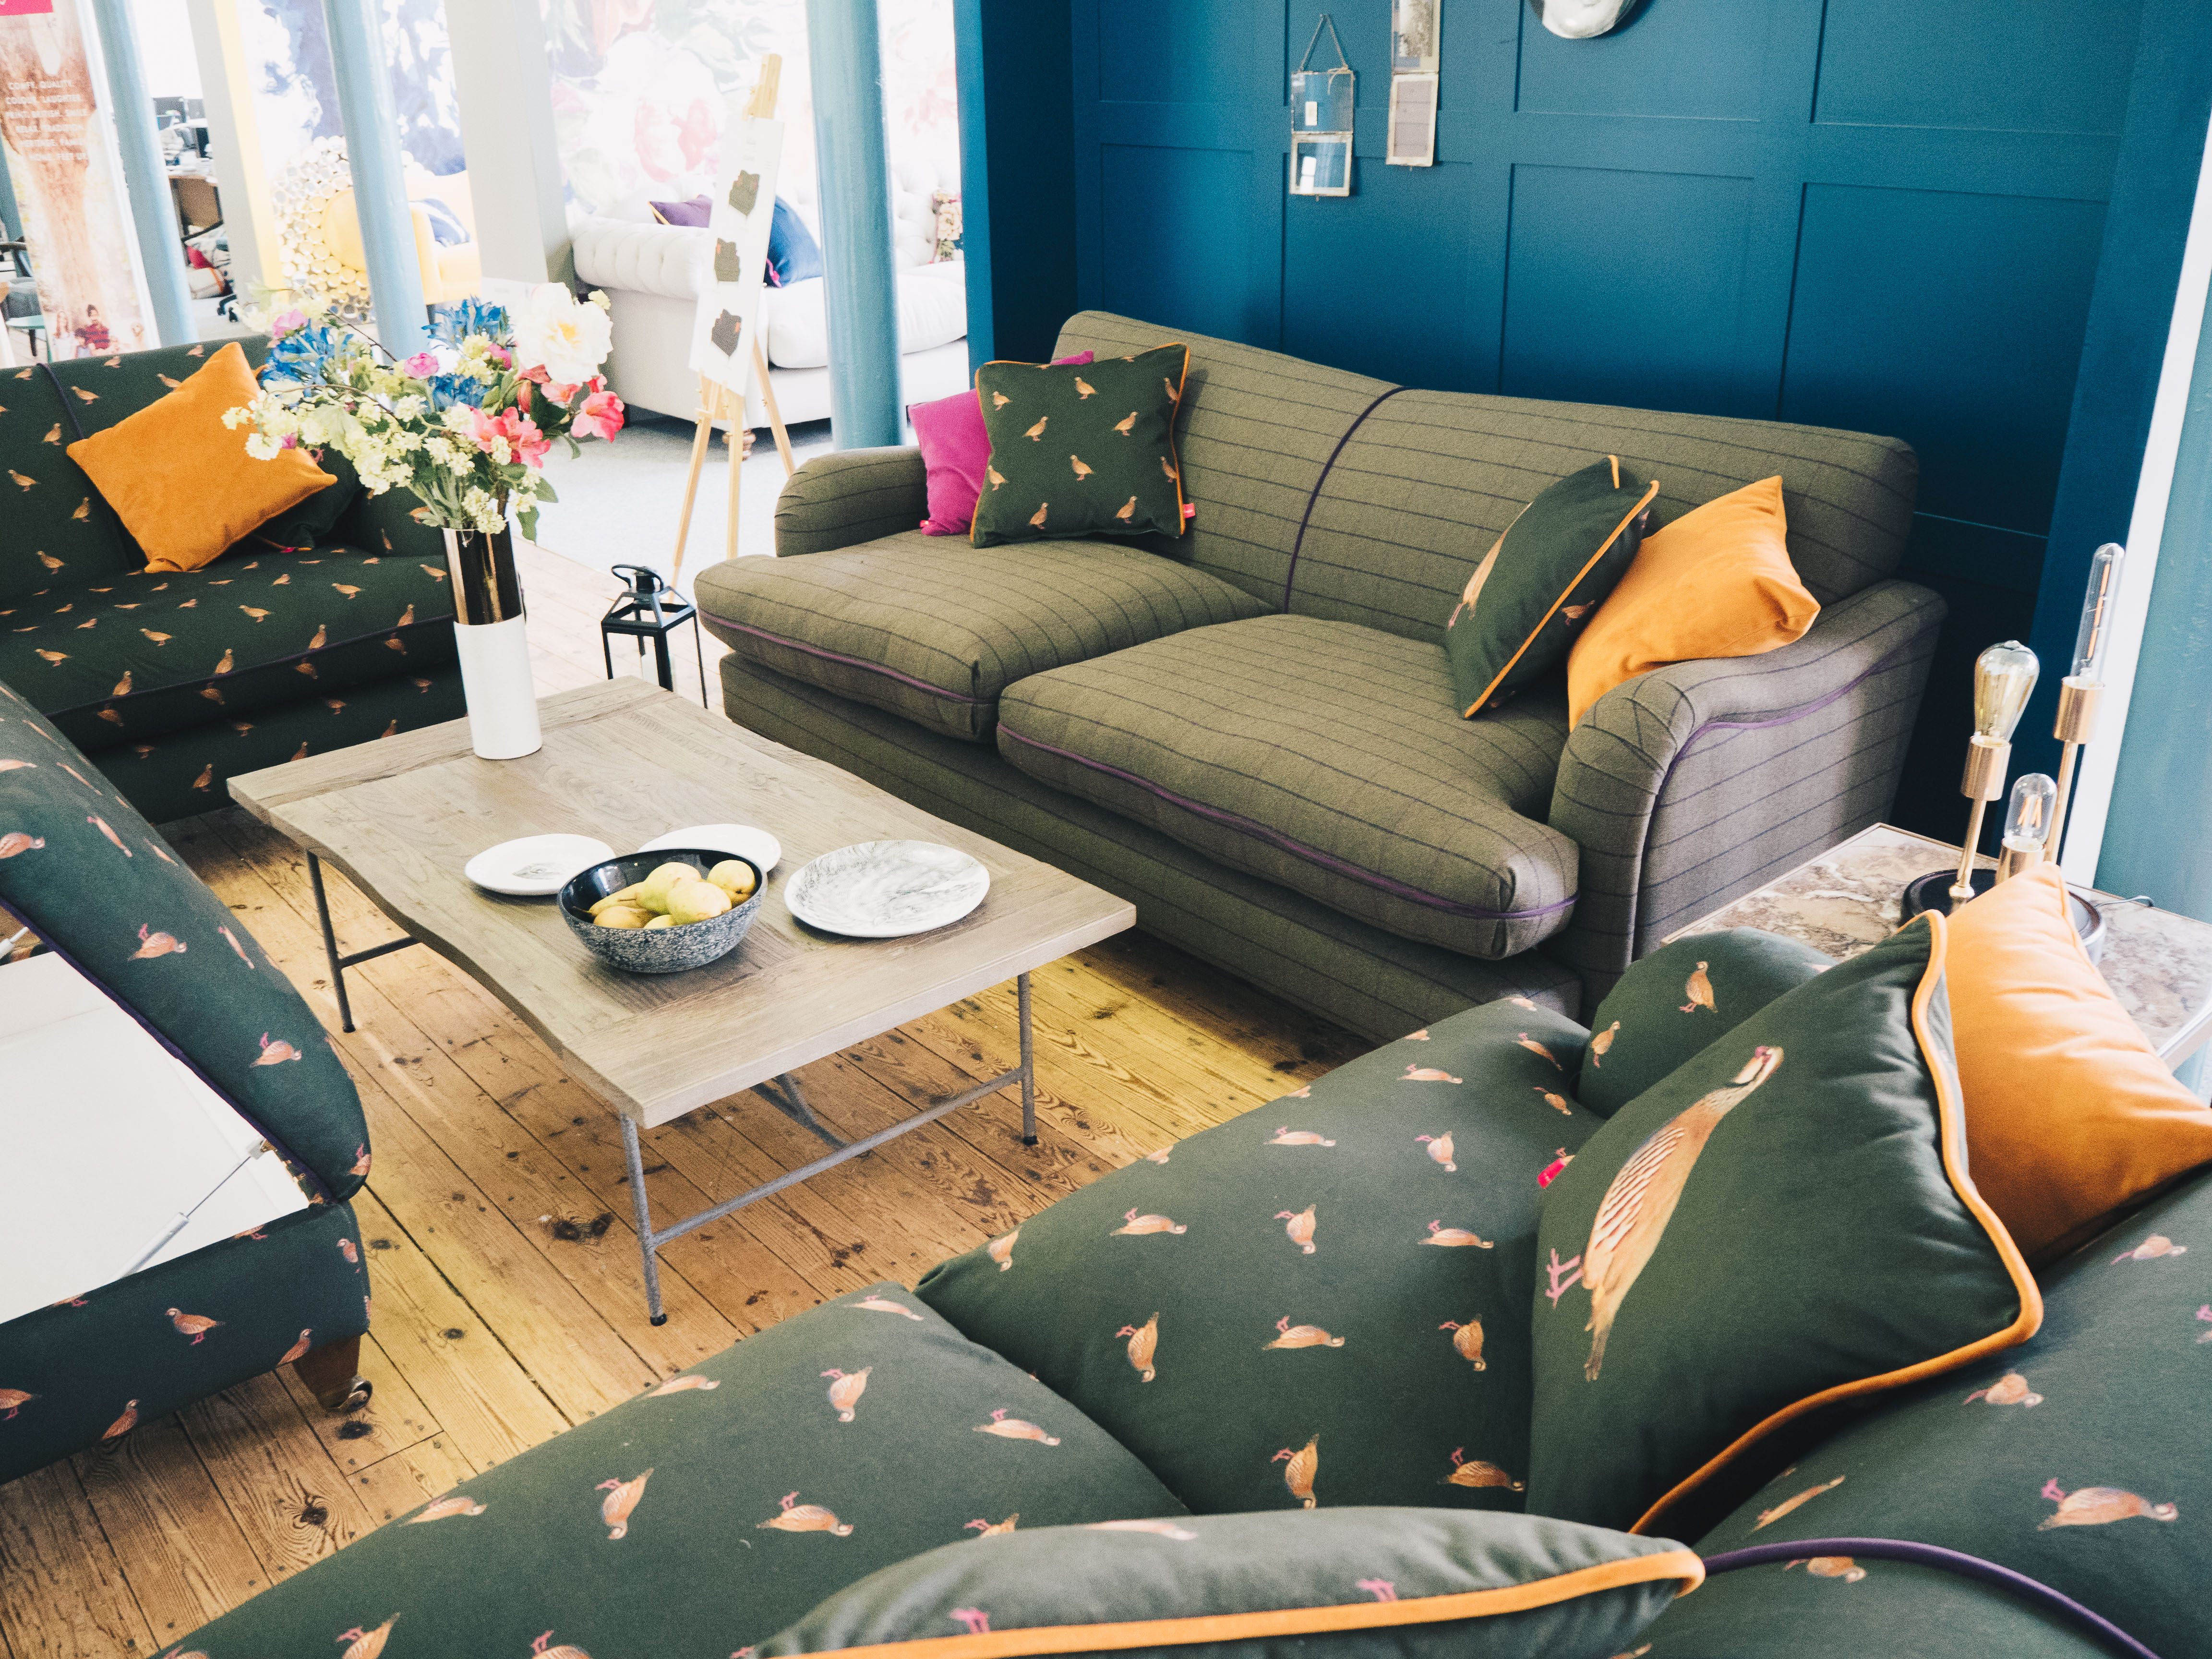 Astounding At Dfs For The Joules Dfs Collaboration Sneak Peek Rhyme Andrewgaddart Wooden Chair Designs For Living Room Andrewgaddartcom